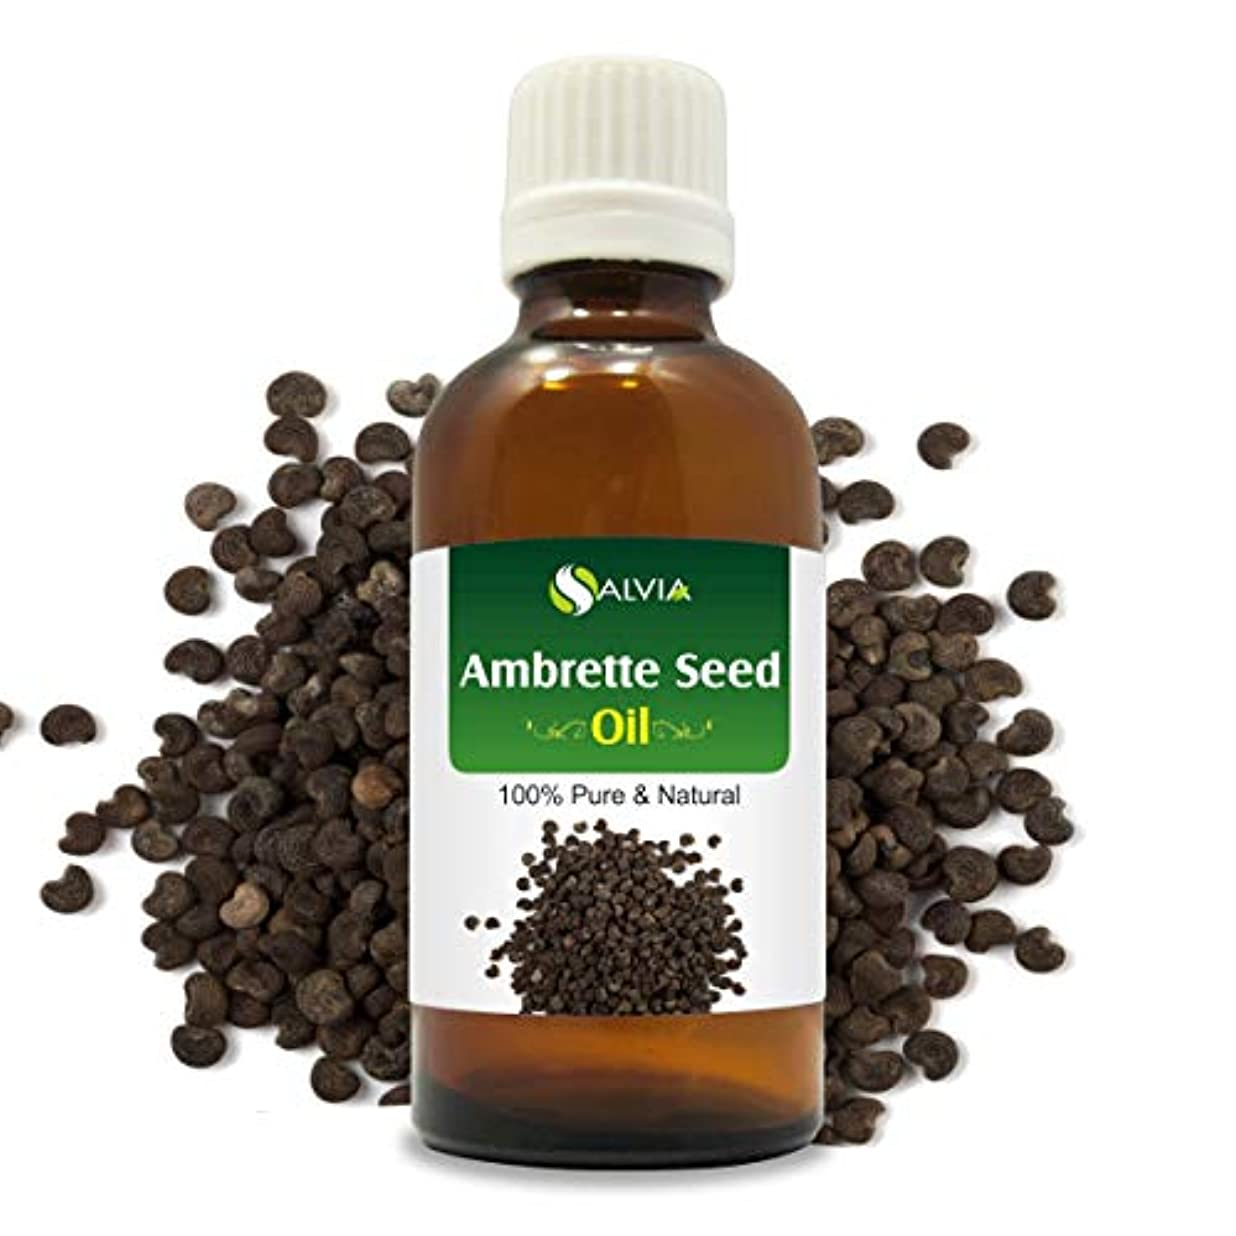 Ambrette Seed Essential Oil (Abelmoschus moschatus) 100% Pure & Natural - Undiluted Uncut Therapeutic Grade -...